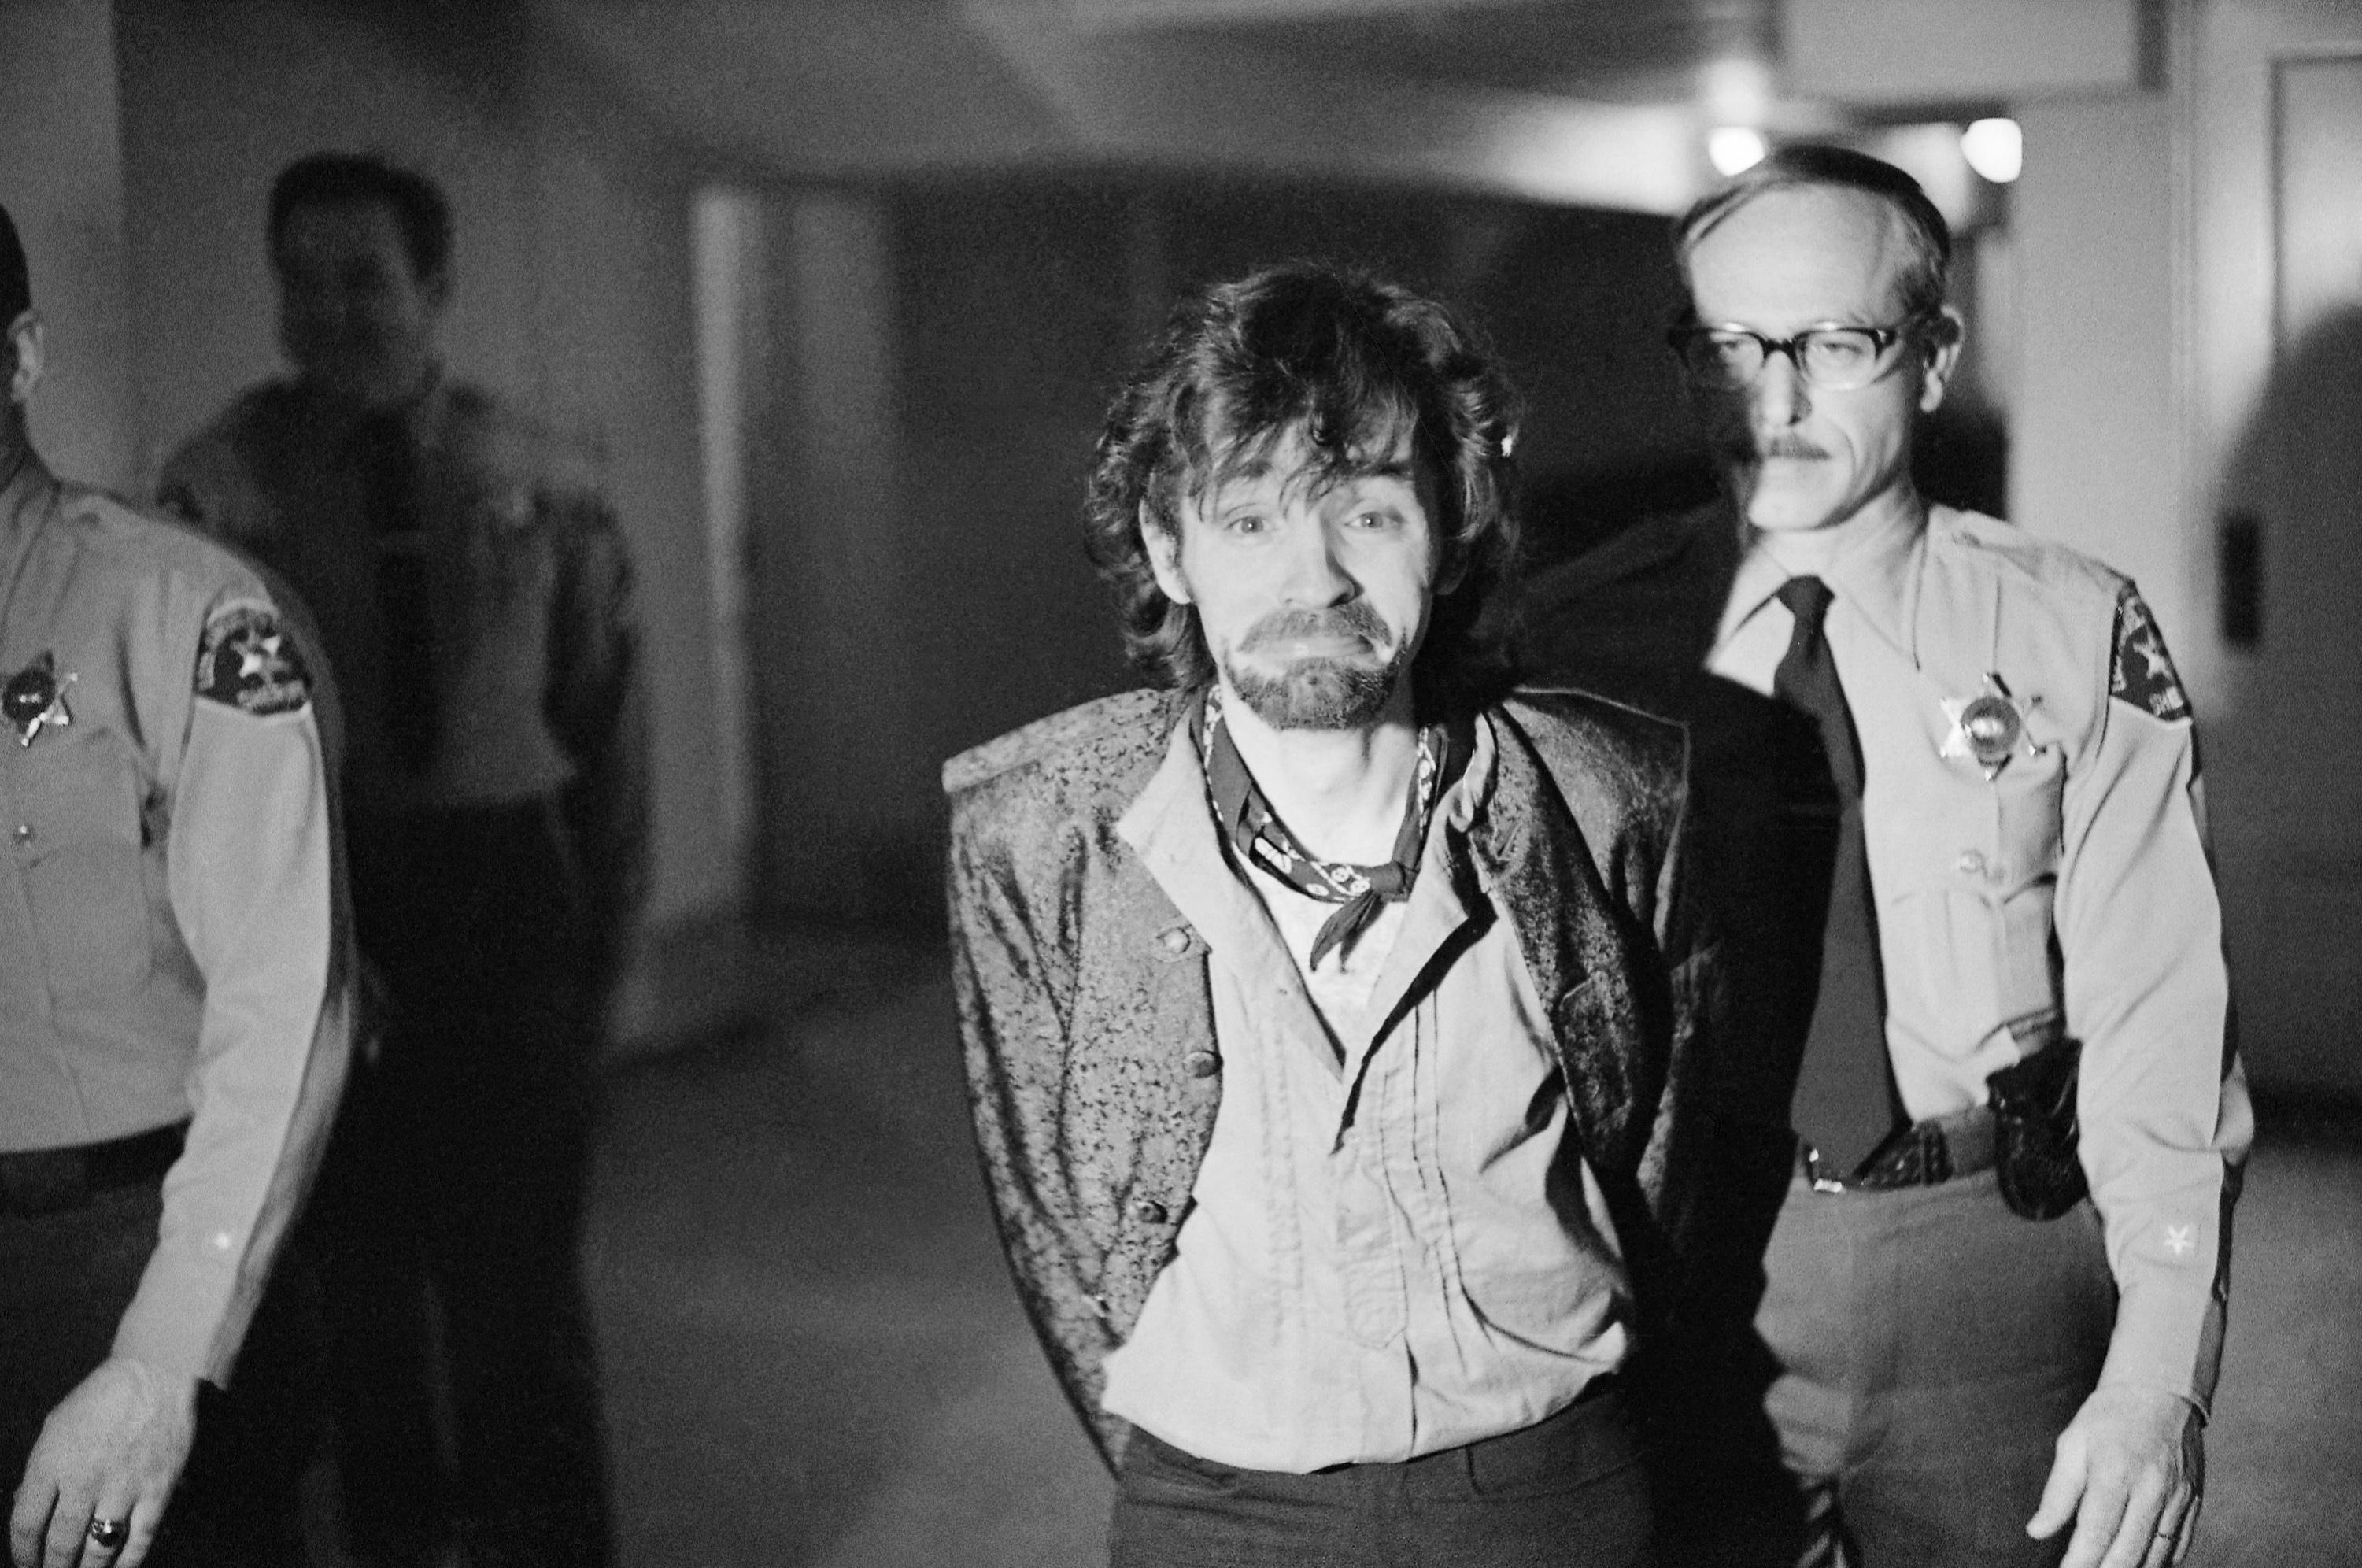 FILE - In this Dec. 21, 1970 file photo, Charles Manson reacts to photographers as he goes to lunch after an outbreak in court that resulted in his ejection, along with three female co-defendants, in the Sharon Tate murder trial.{&amp;nbsp;} (AP Photo/George Brich, File)<p></p>